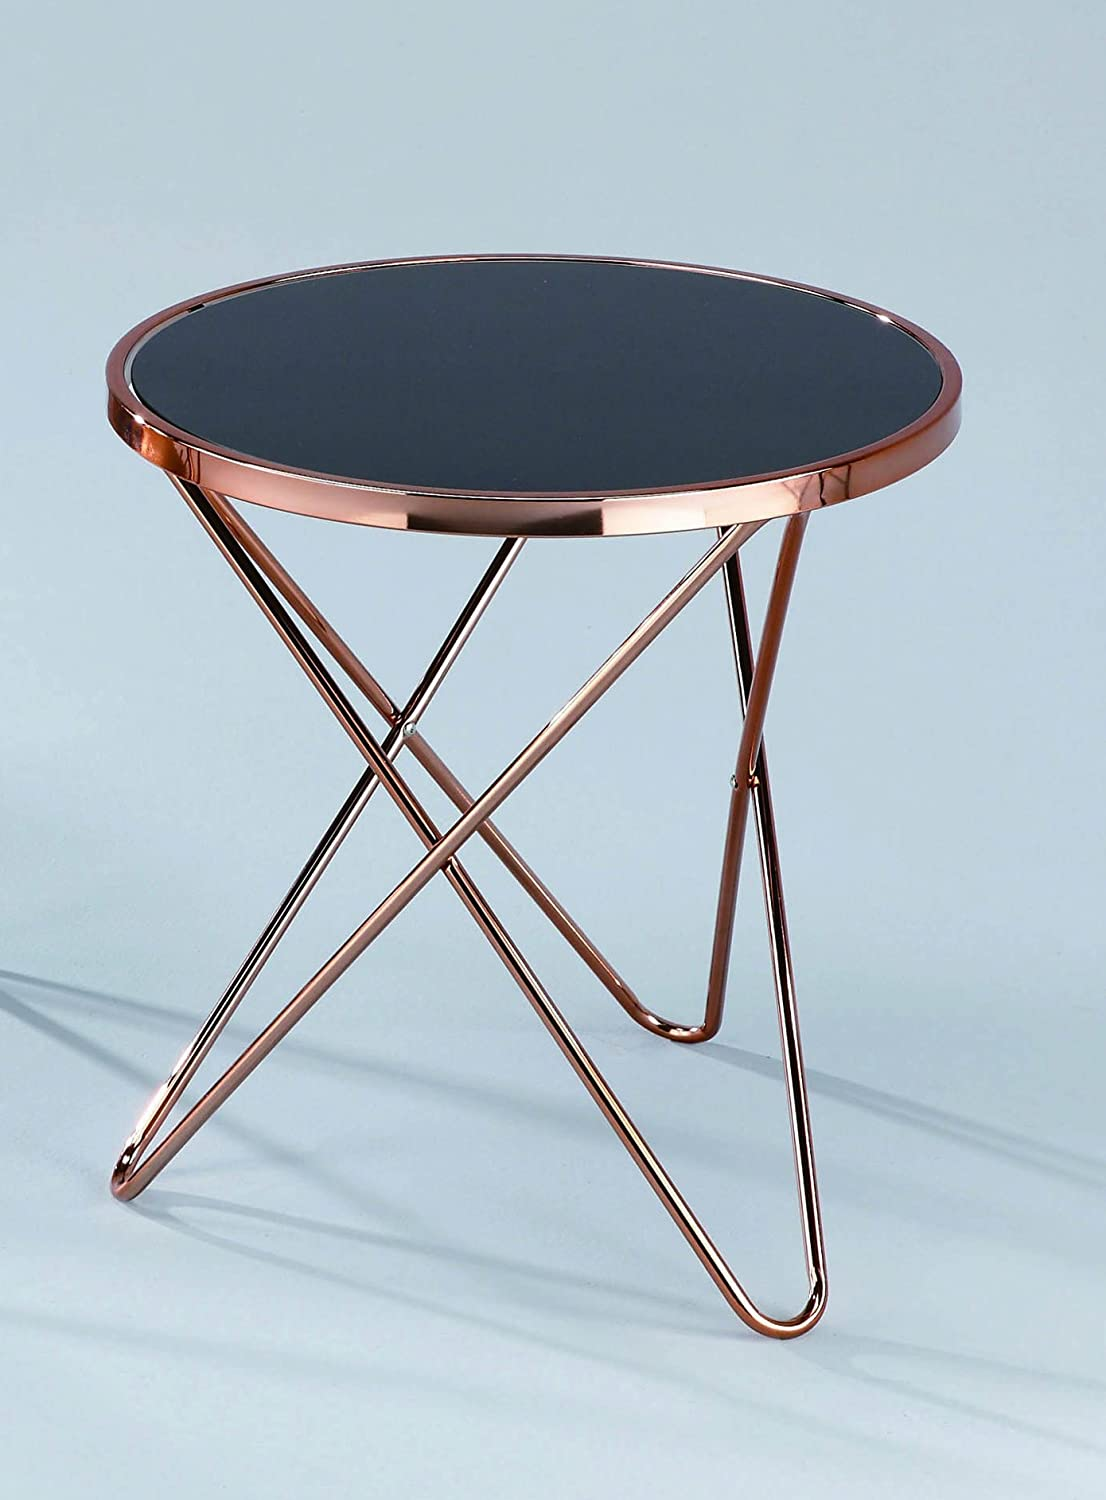 Merveilleux ASPECT Porto Round Side/Coffee/End/Lamp Table, Metal, Copper/Black